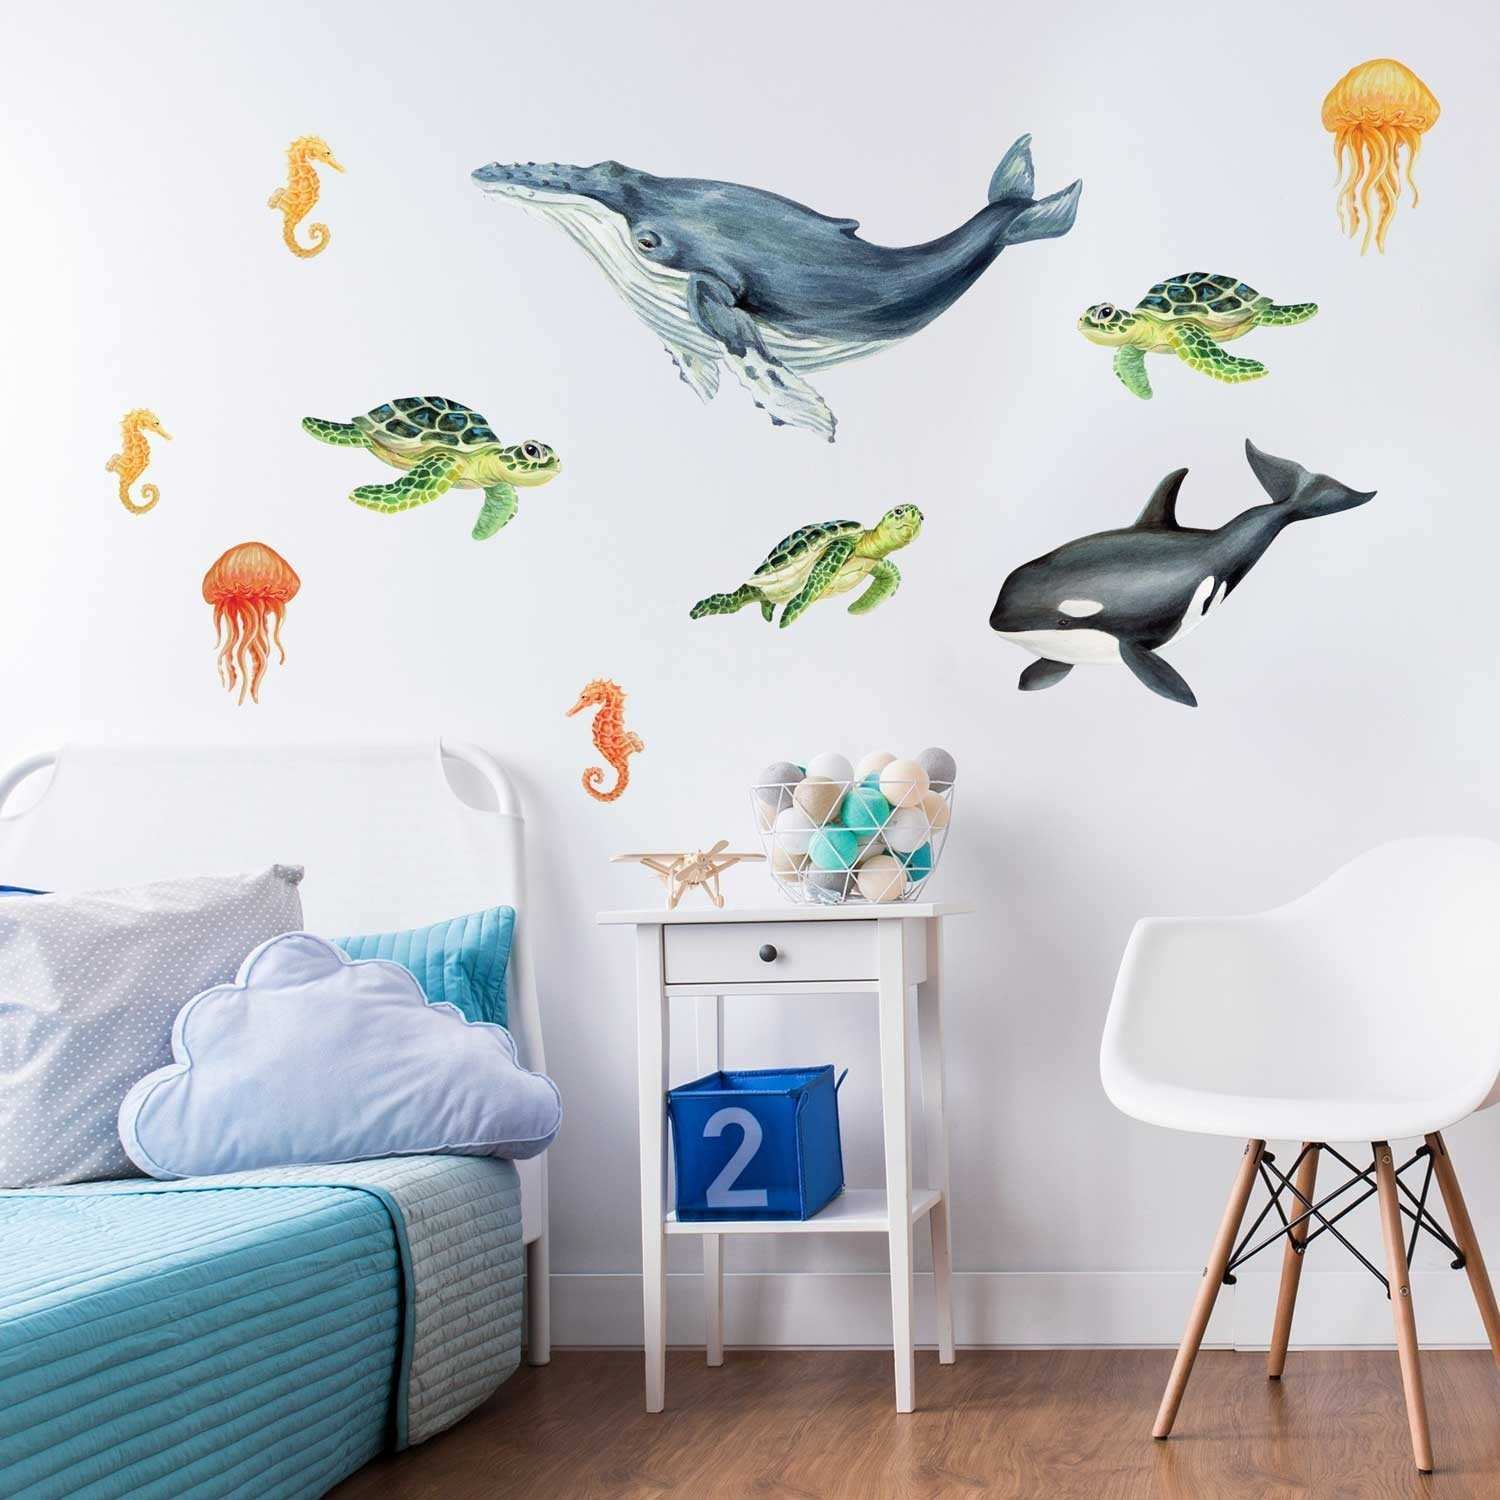 47 New Animal Wall Decals for Nursery